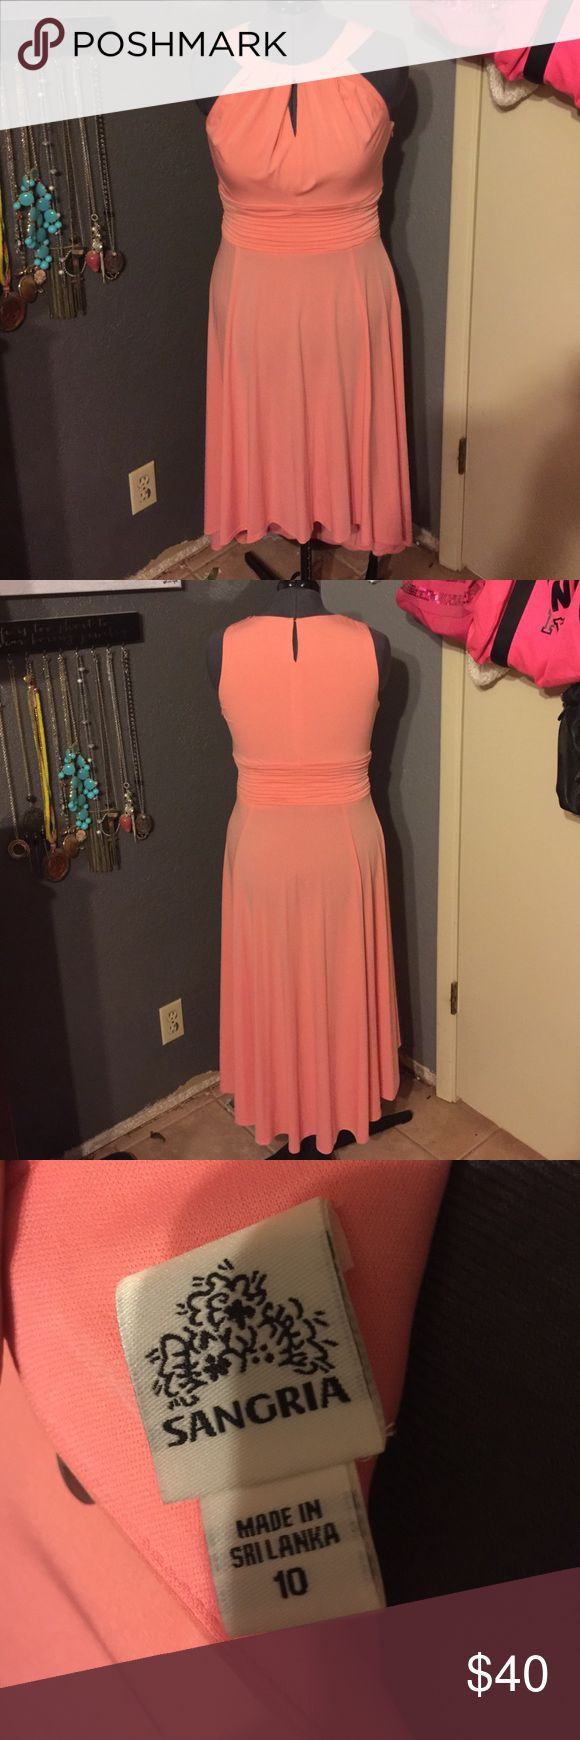 Sangria Dress Beautiful creamcycle colored dress. Worn once for a wedding. Excellent, like new condition. Sangria Dresses High Low